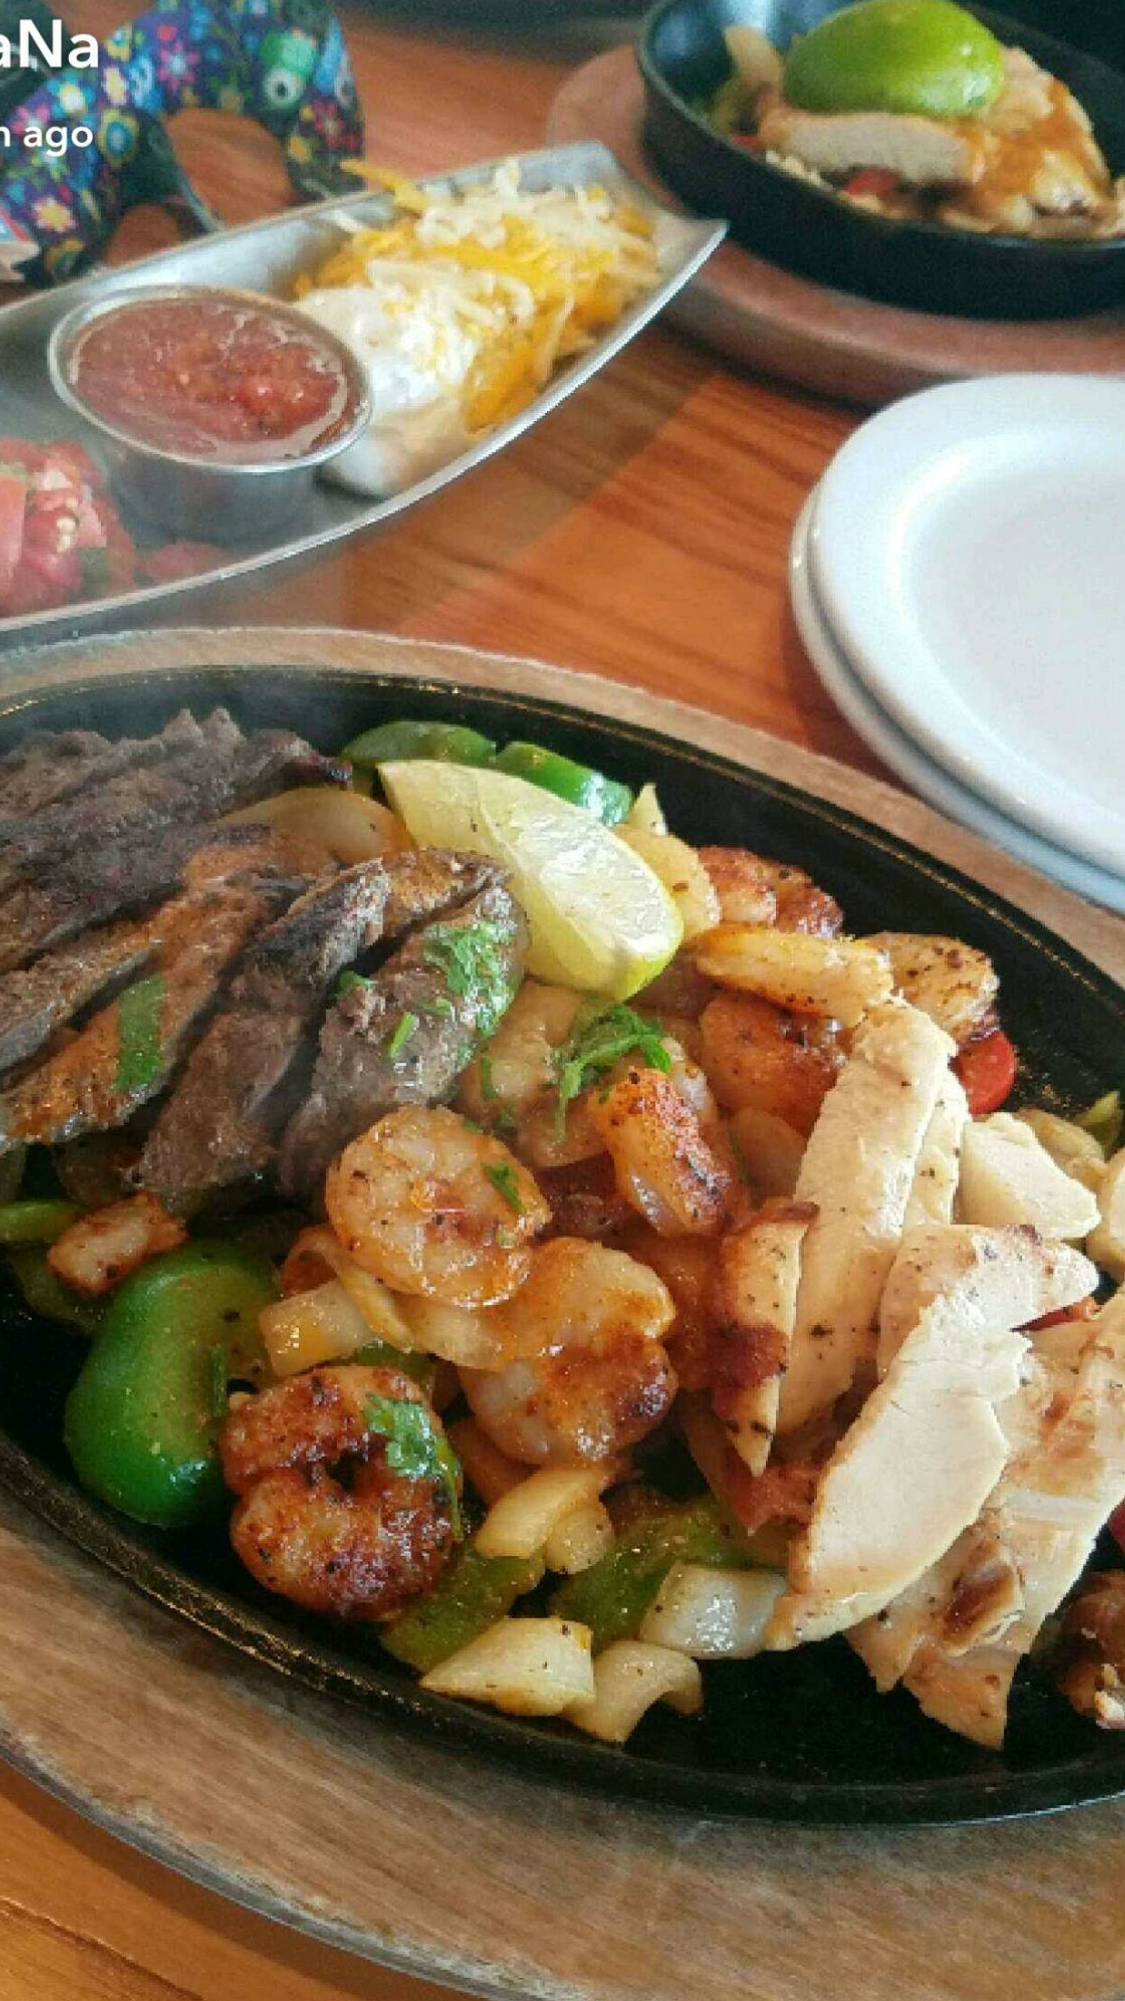 chili's fajitas, chicken and shrimp trio | low carb options at